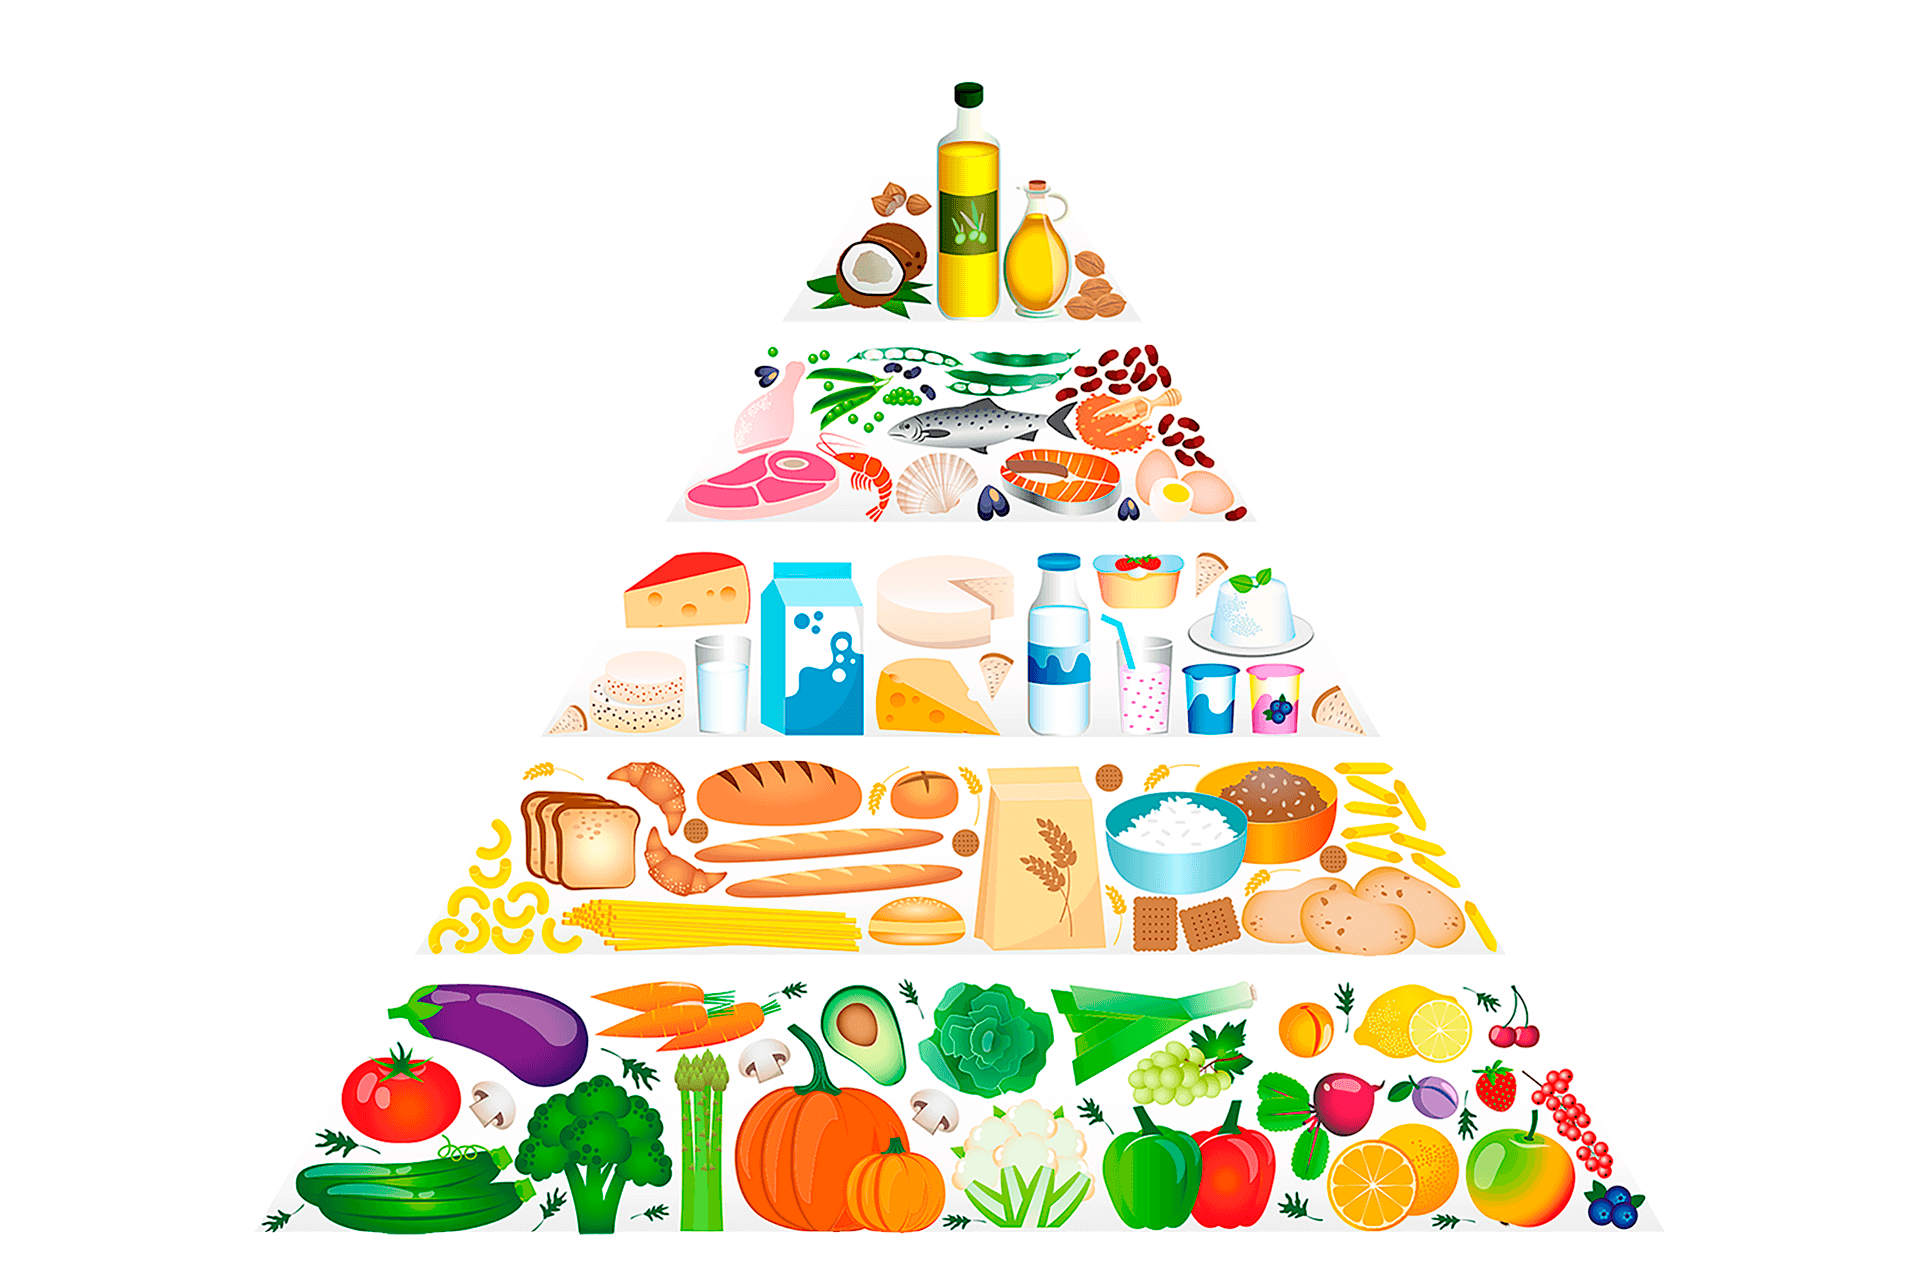 main components of food pyramid for children - food pyramid for kids